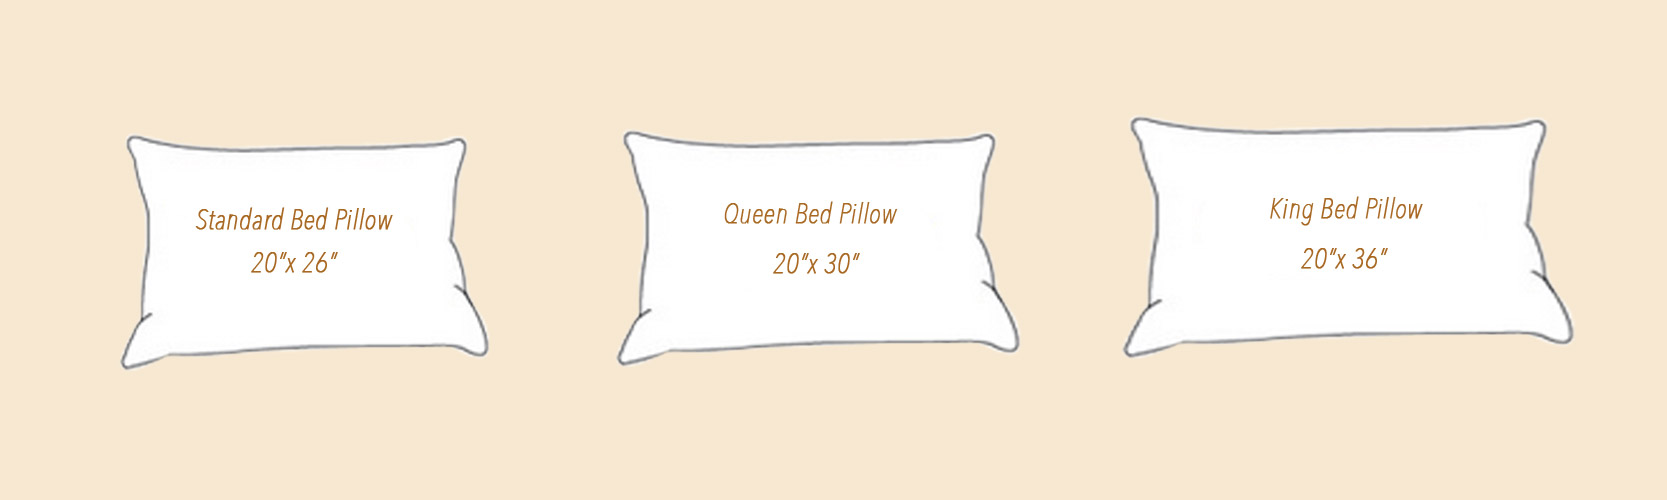 Standard Bed Pillows